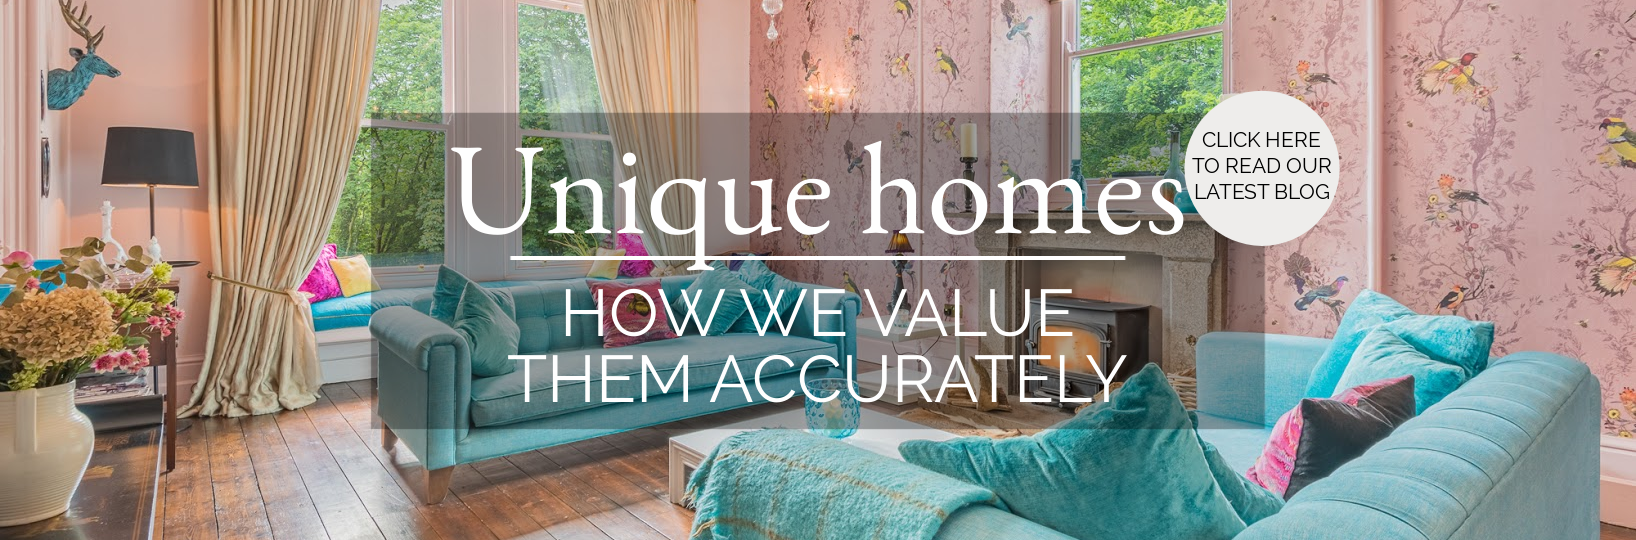 facebook-cover-art-unique-homes--how-we-value-them-accurately-1